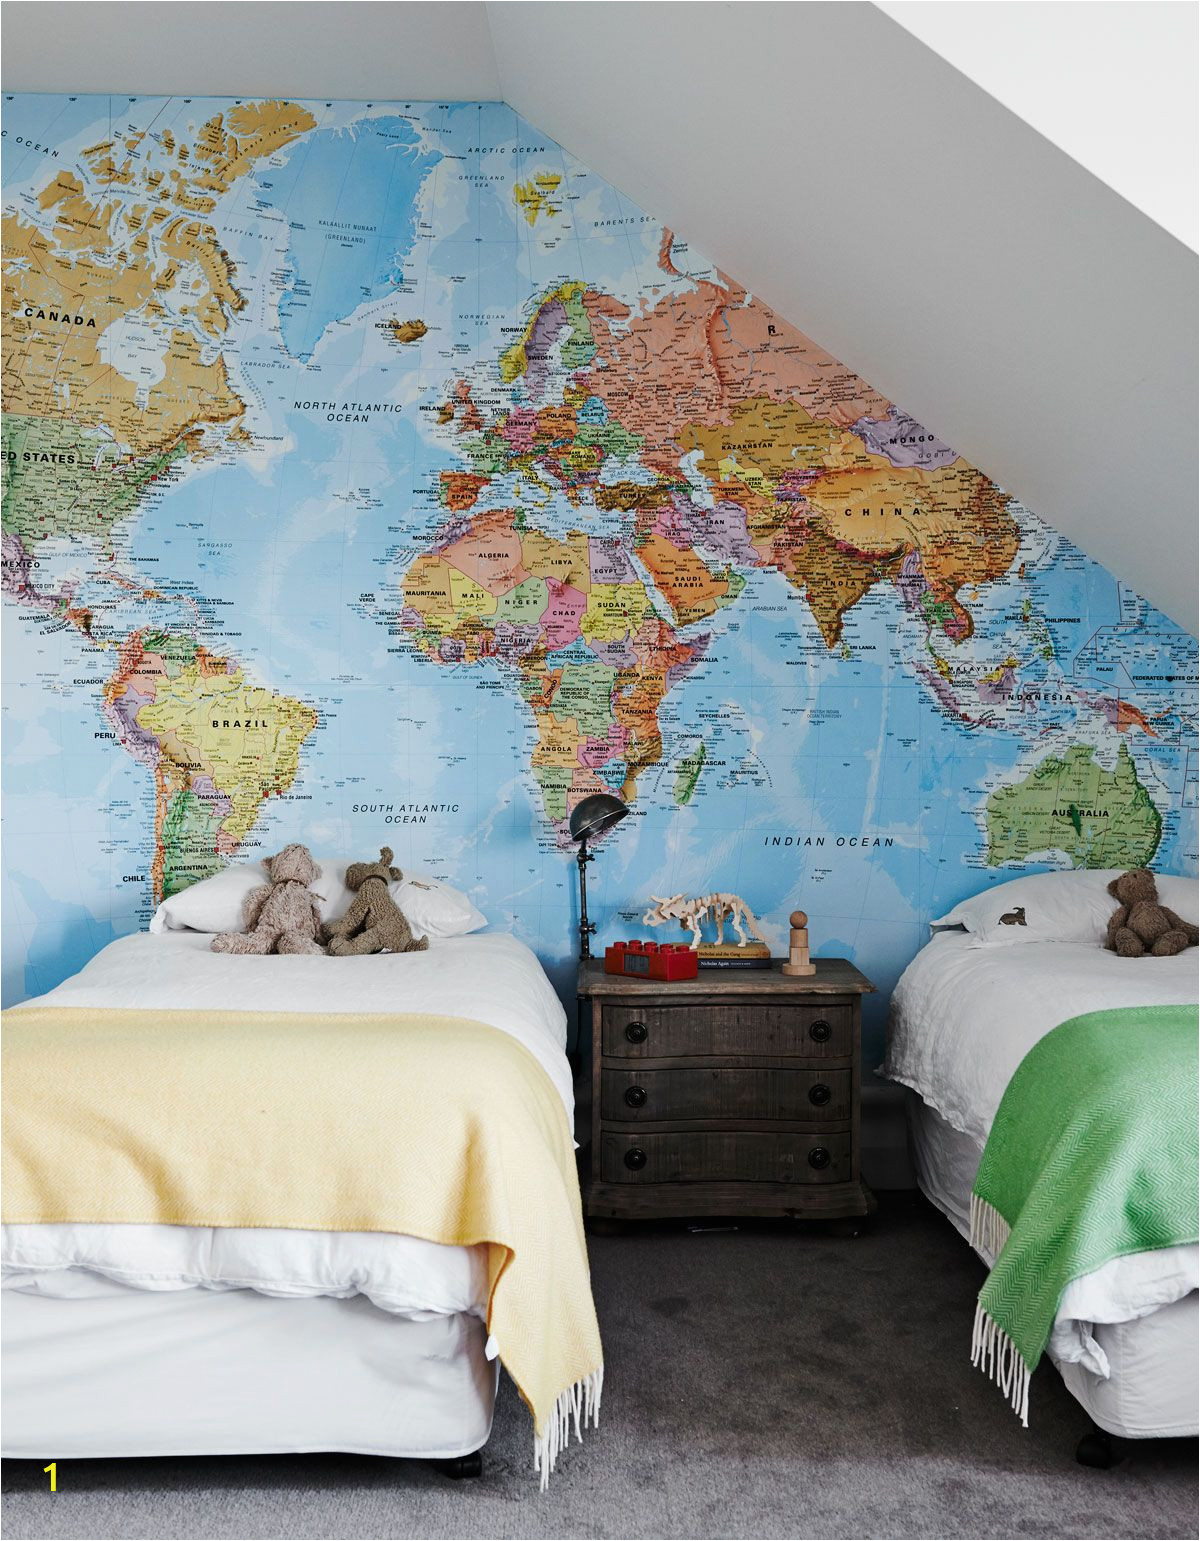 Full Wall Map Mural Trending the Best World Map Murals and Map Wallpapers